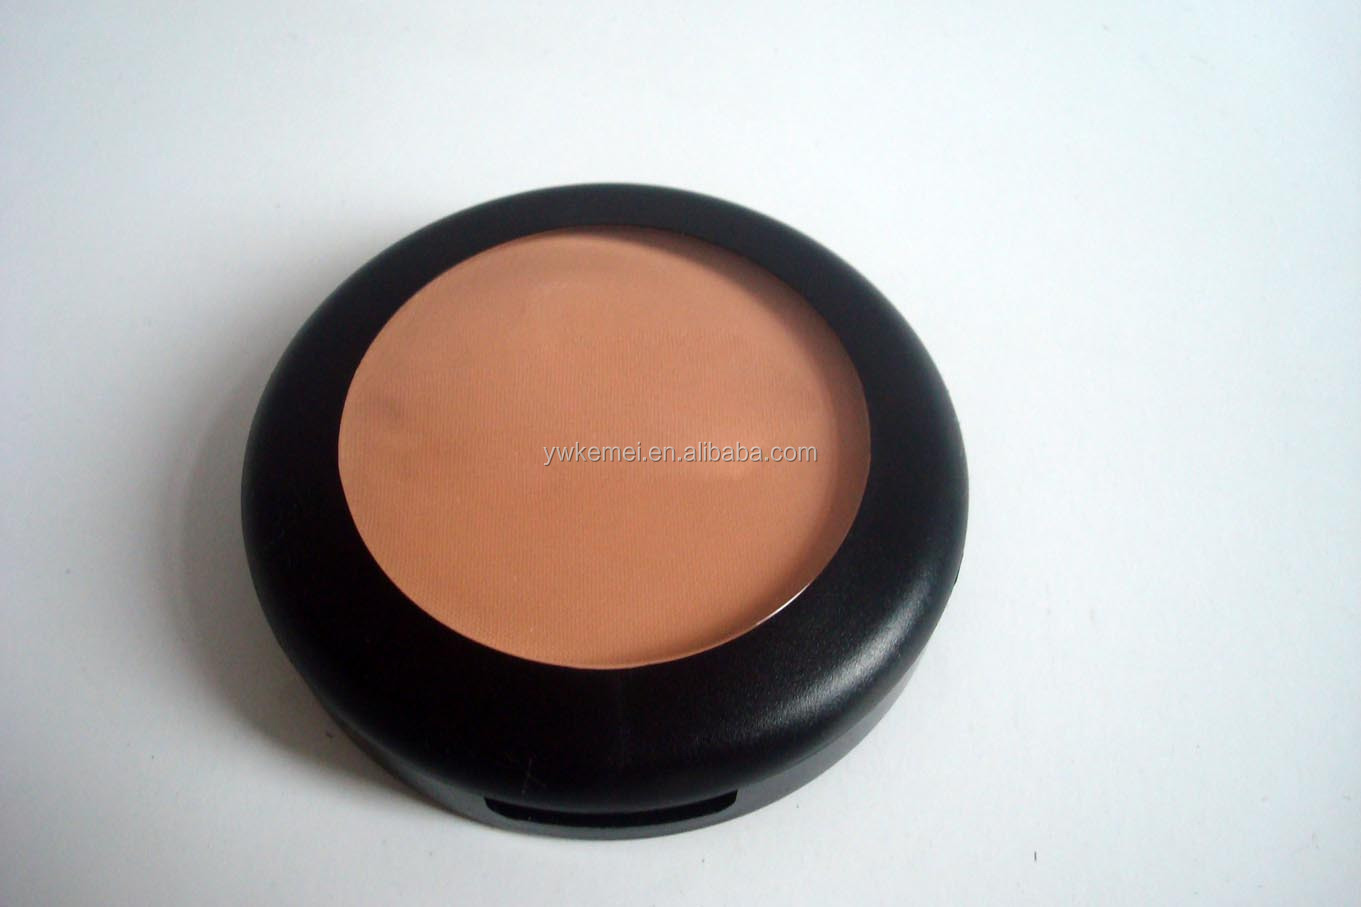 Hot sale smooth mineral compact powder